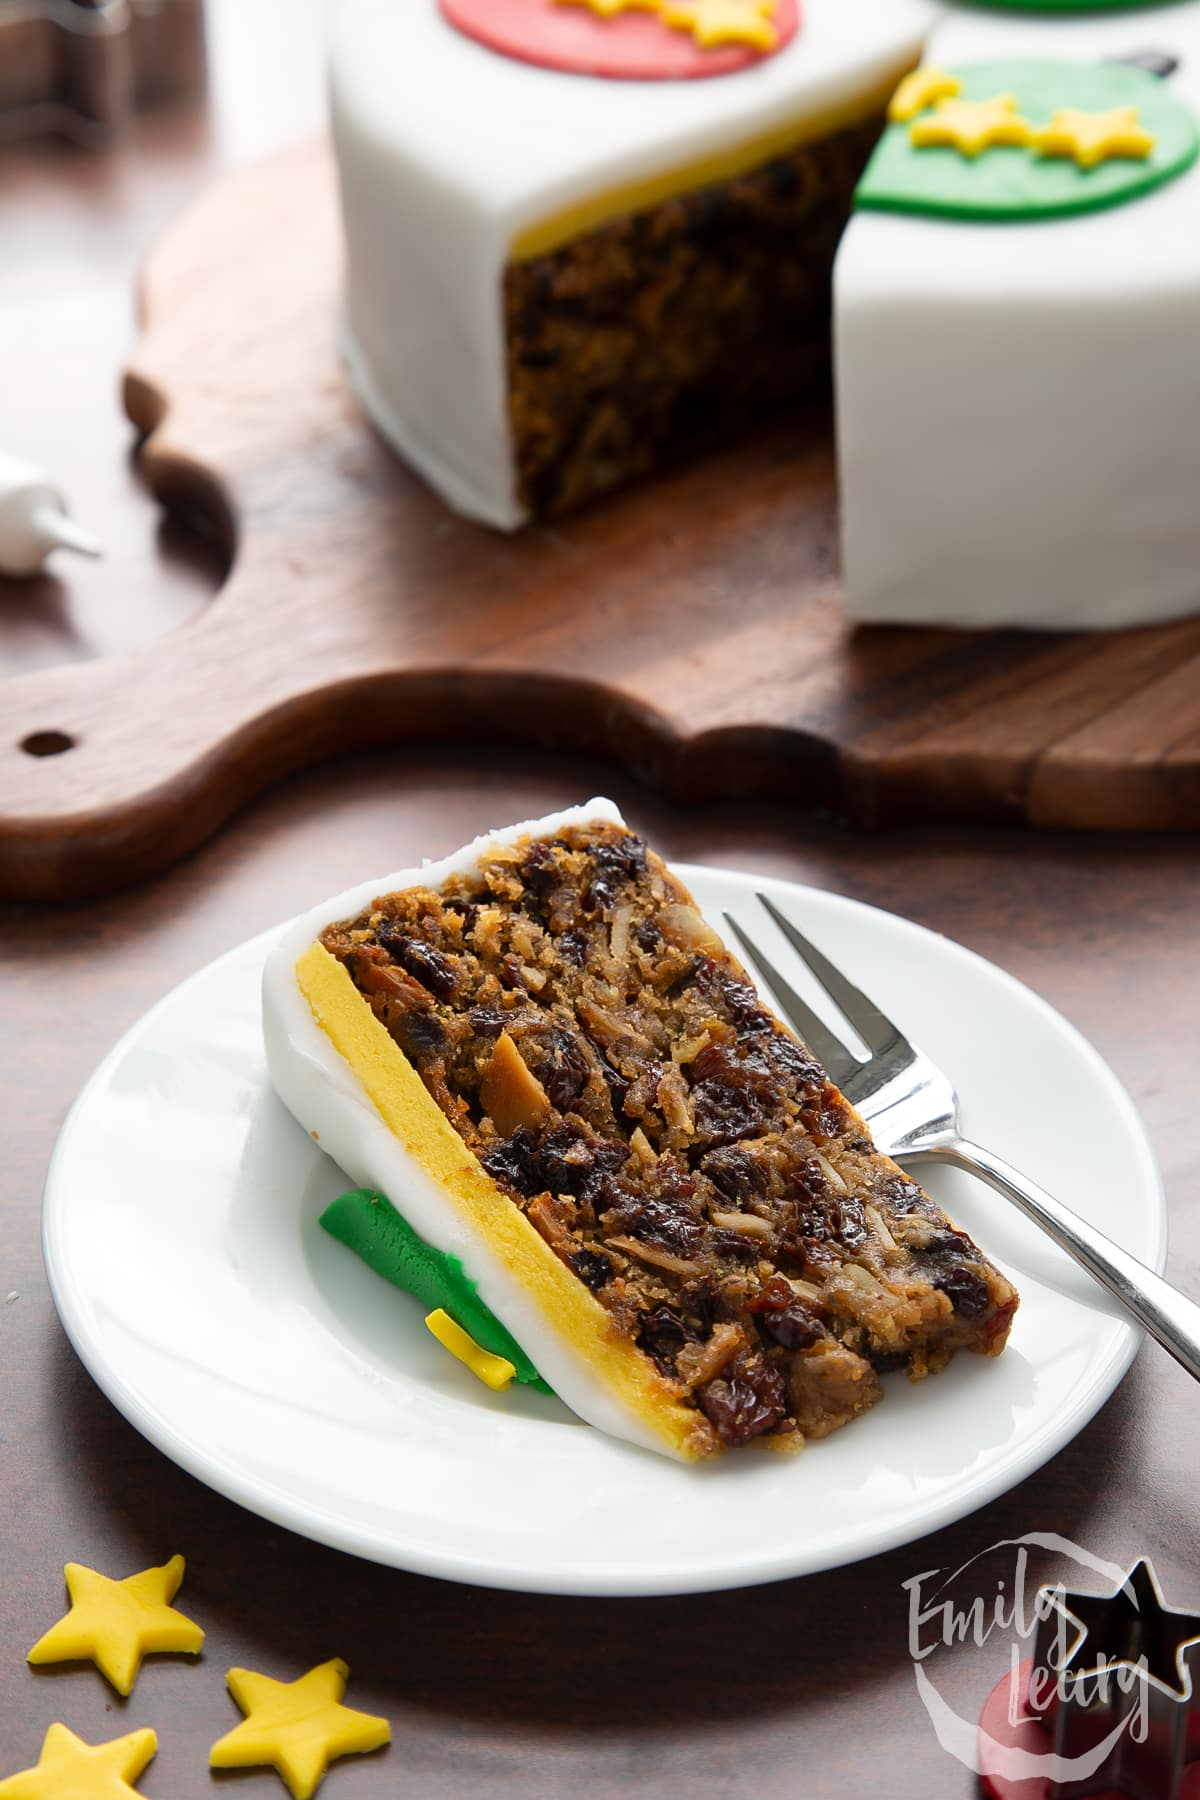 Slice of vegan Christmas cake on a white plate with a fork.